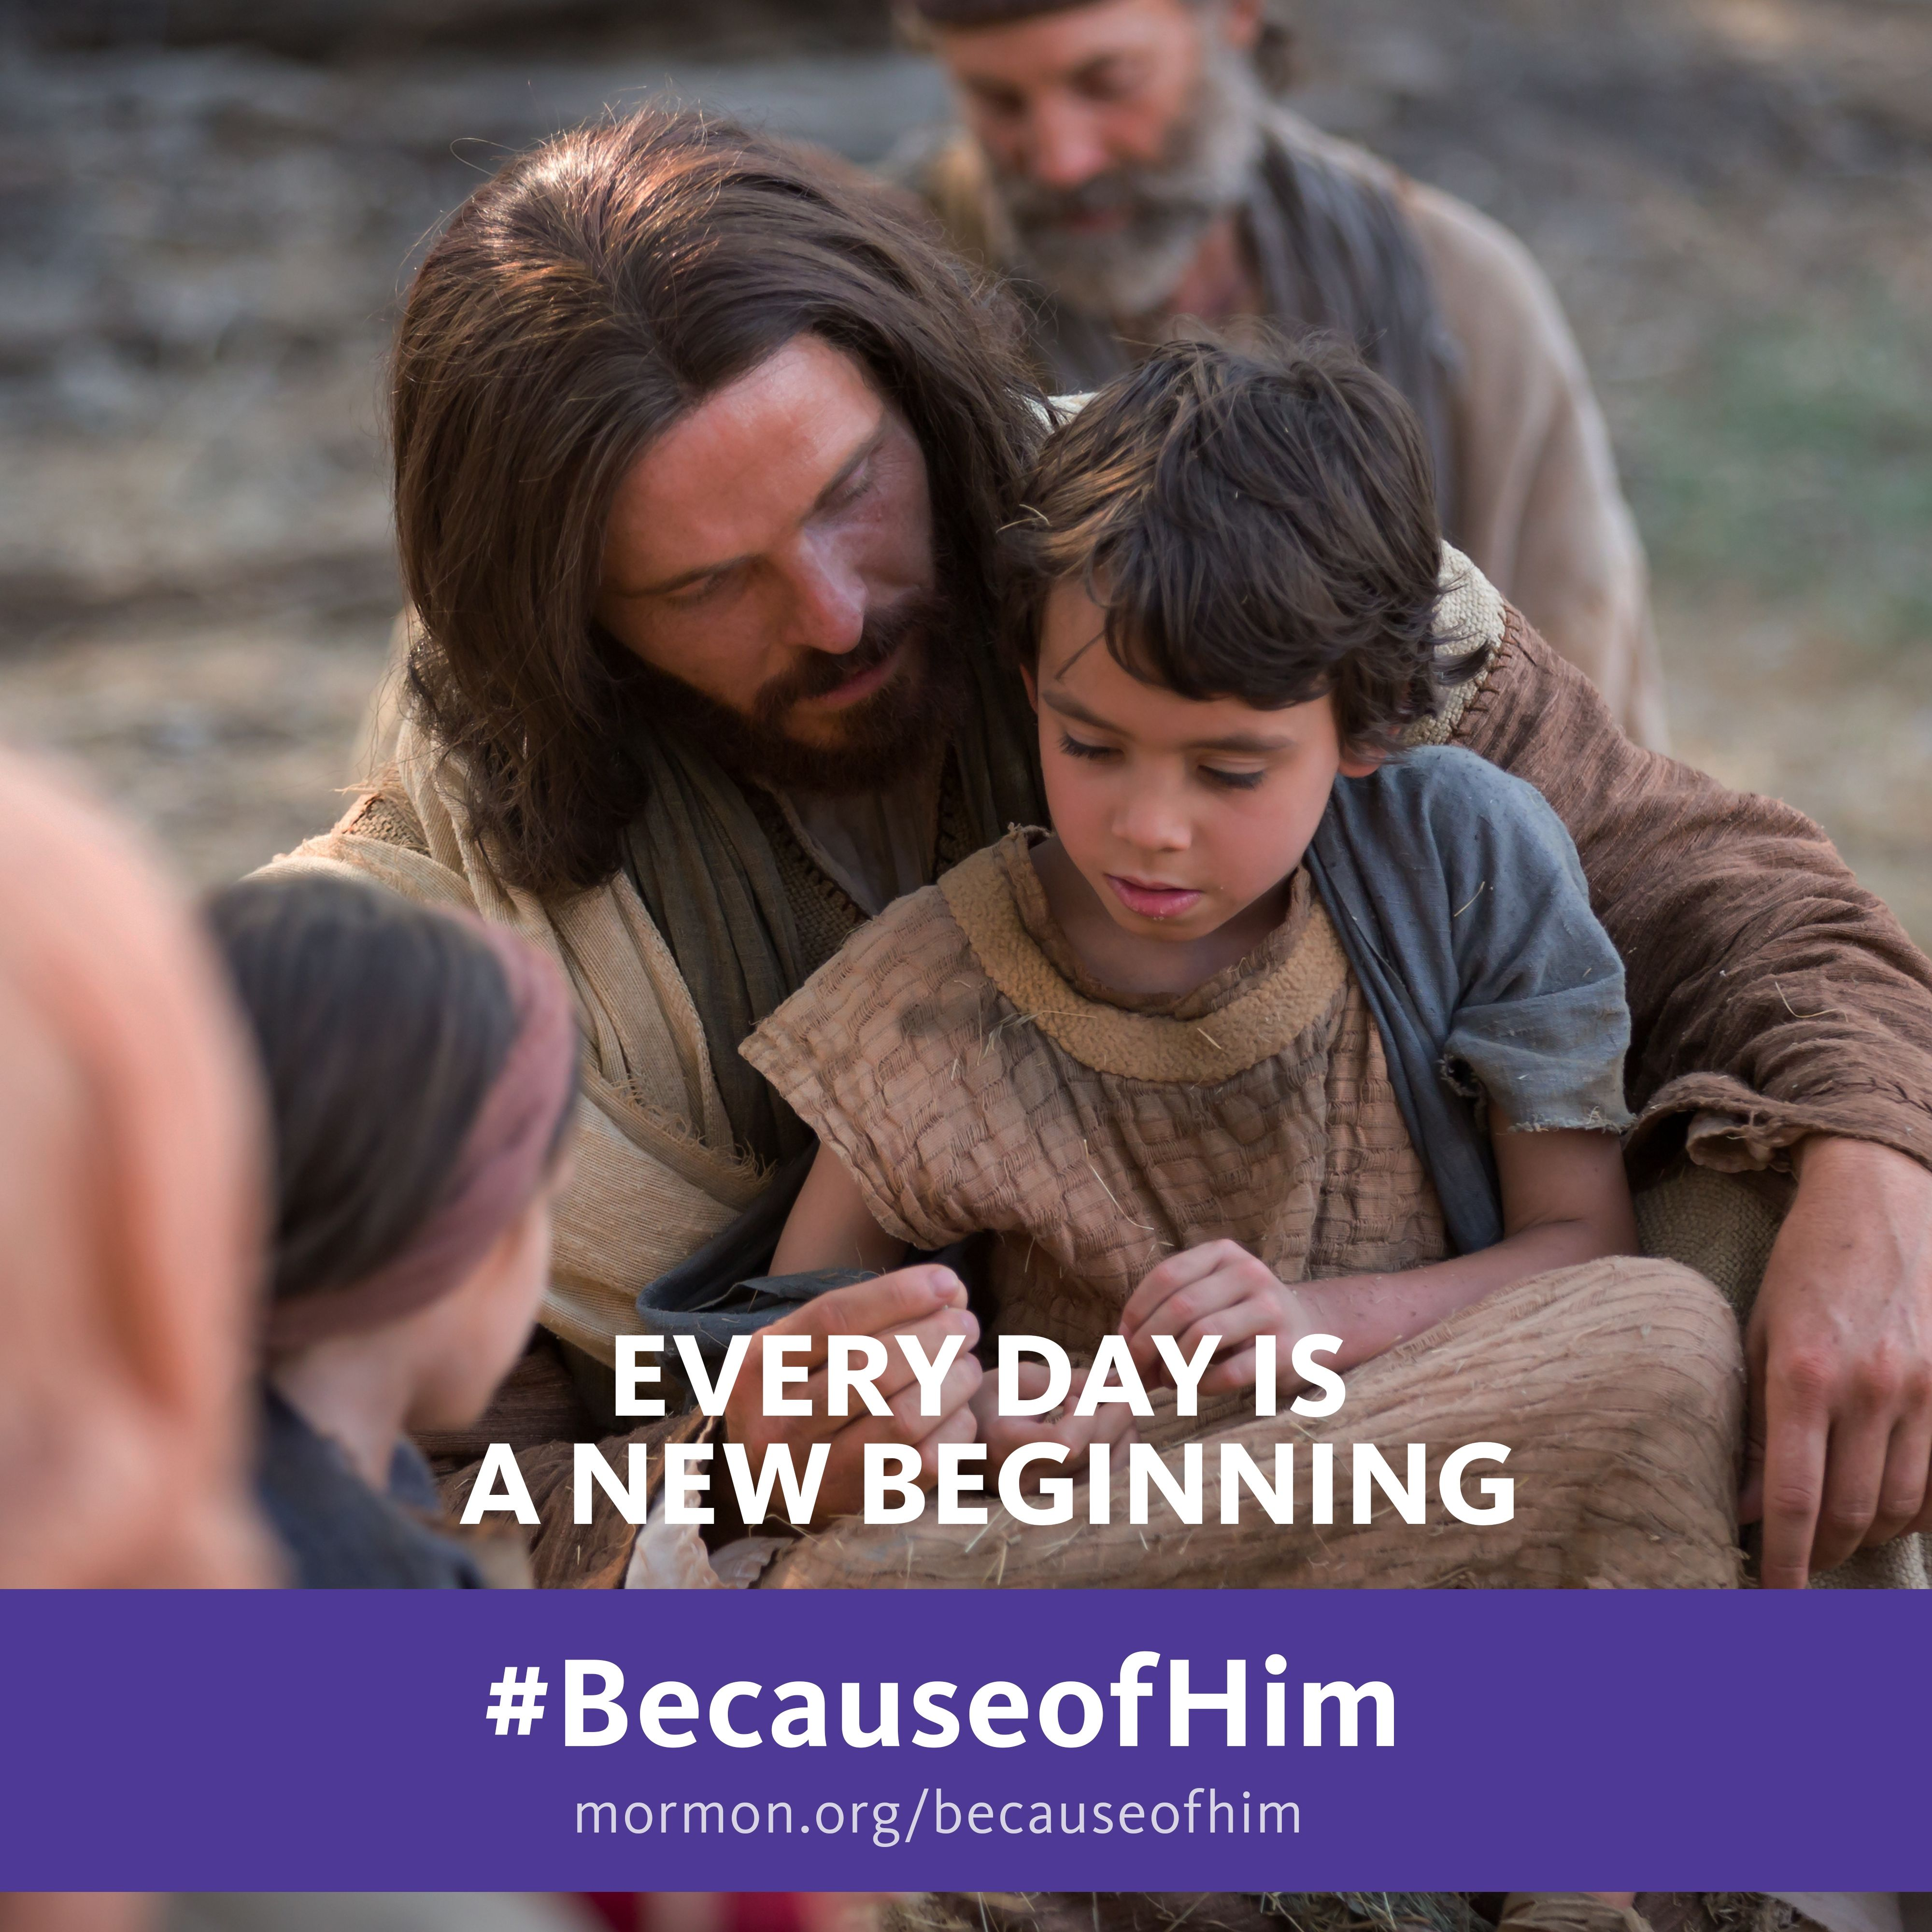 Every day is a new beginning. #BecauseofHim, mormon.org/becauseofhim